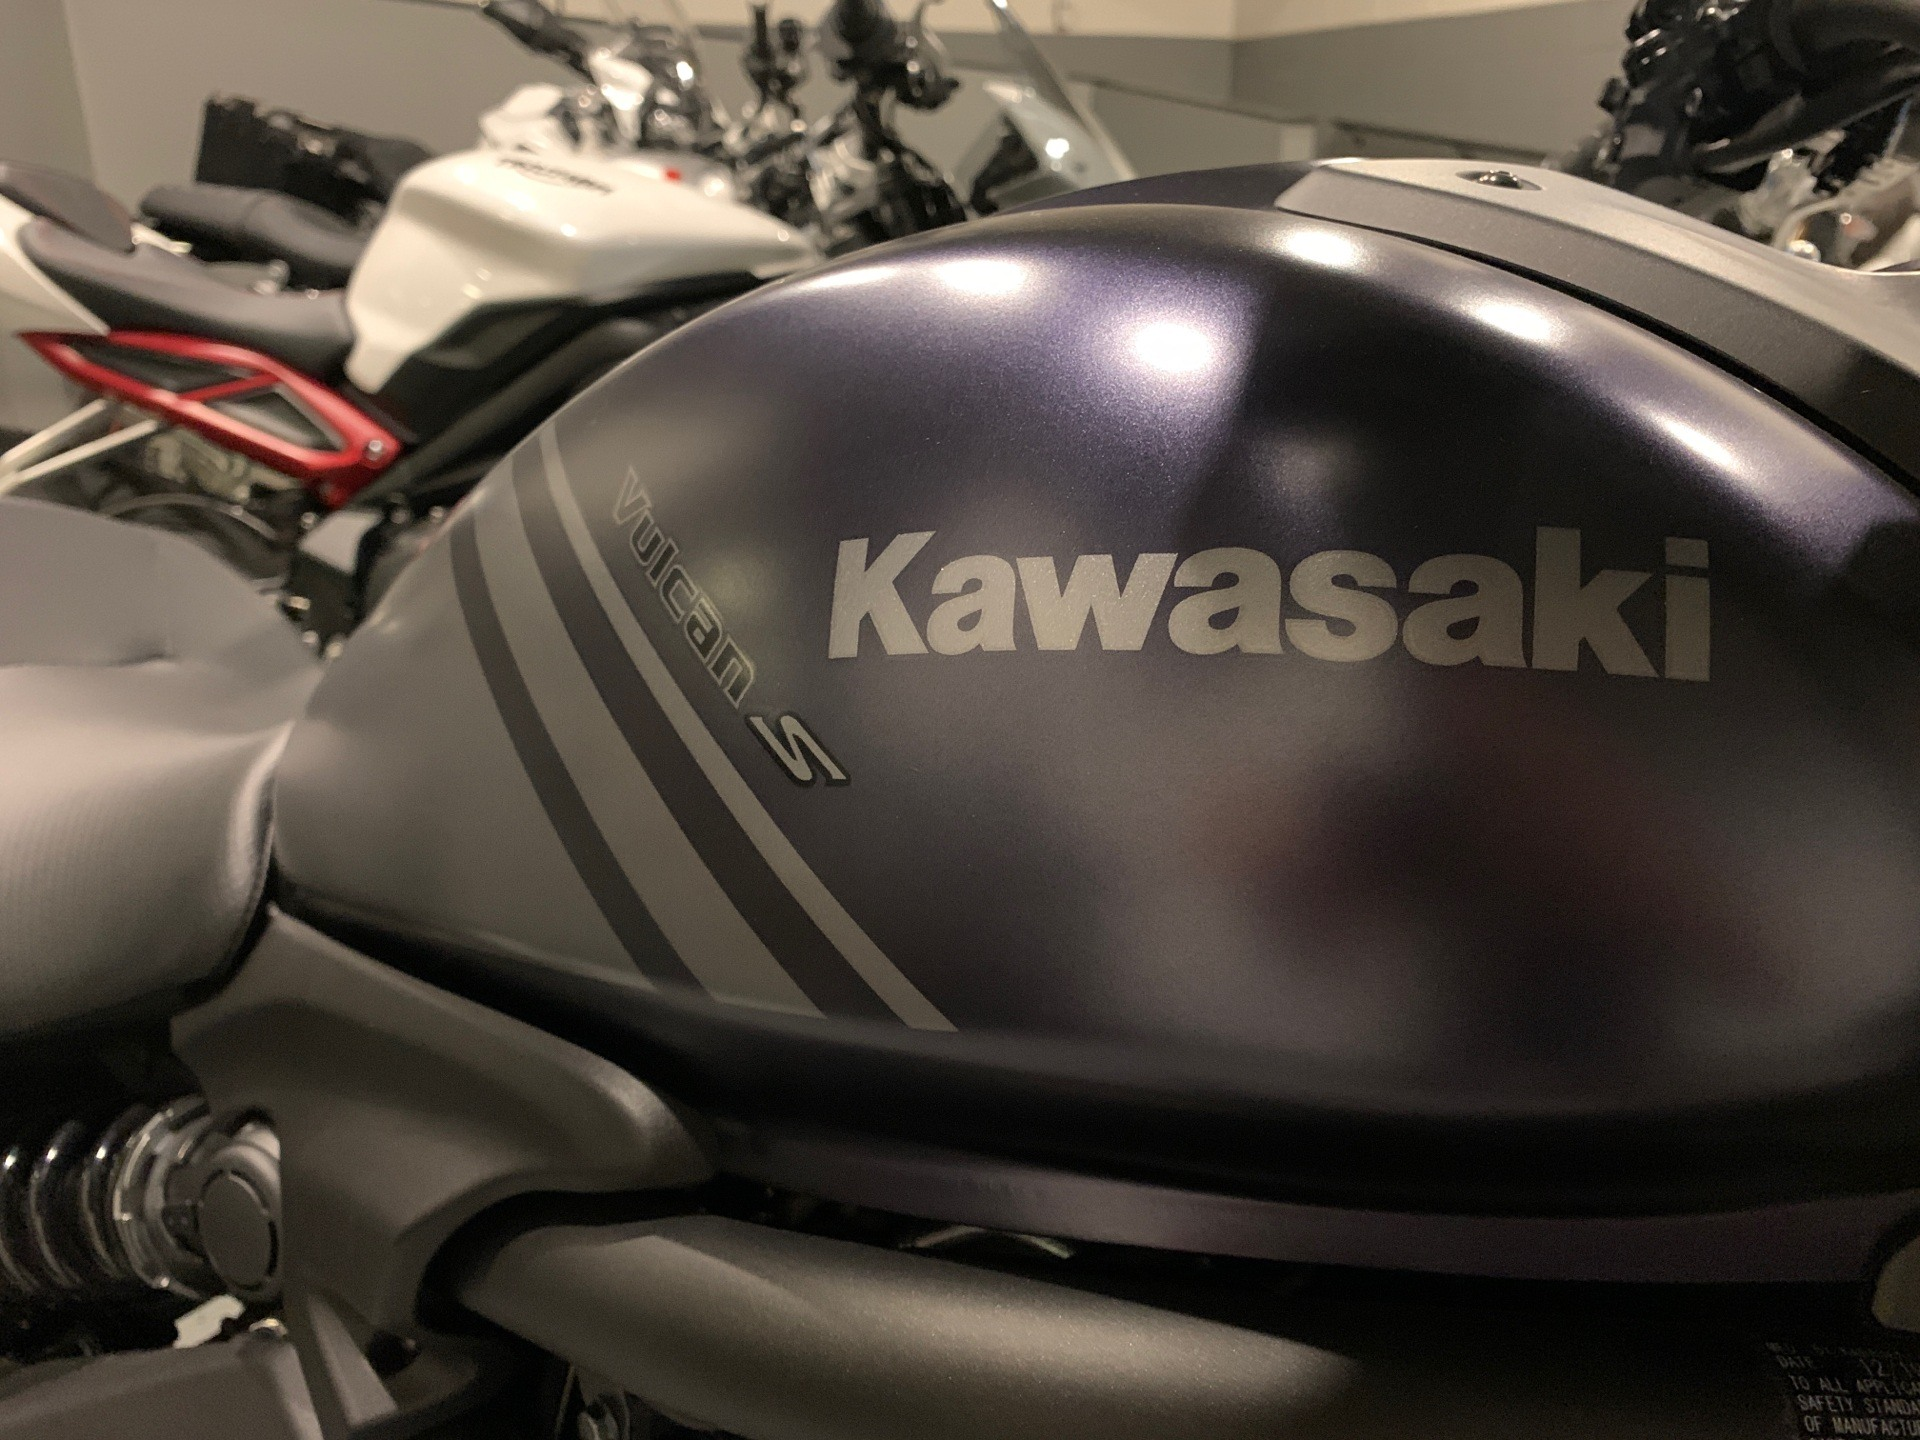 2020 Kawasaki Vulcan S ABS in Shelby Township, Michigan - Photo 11